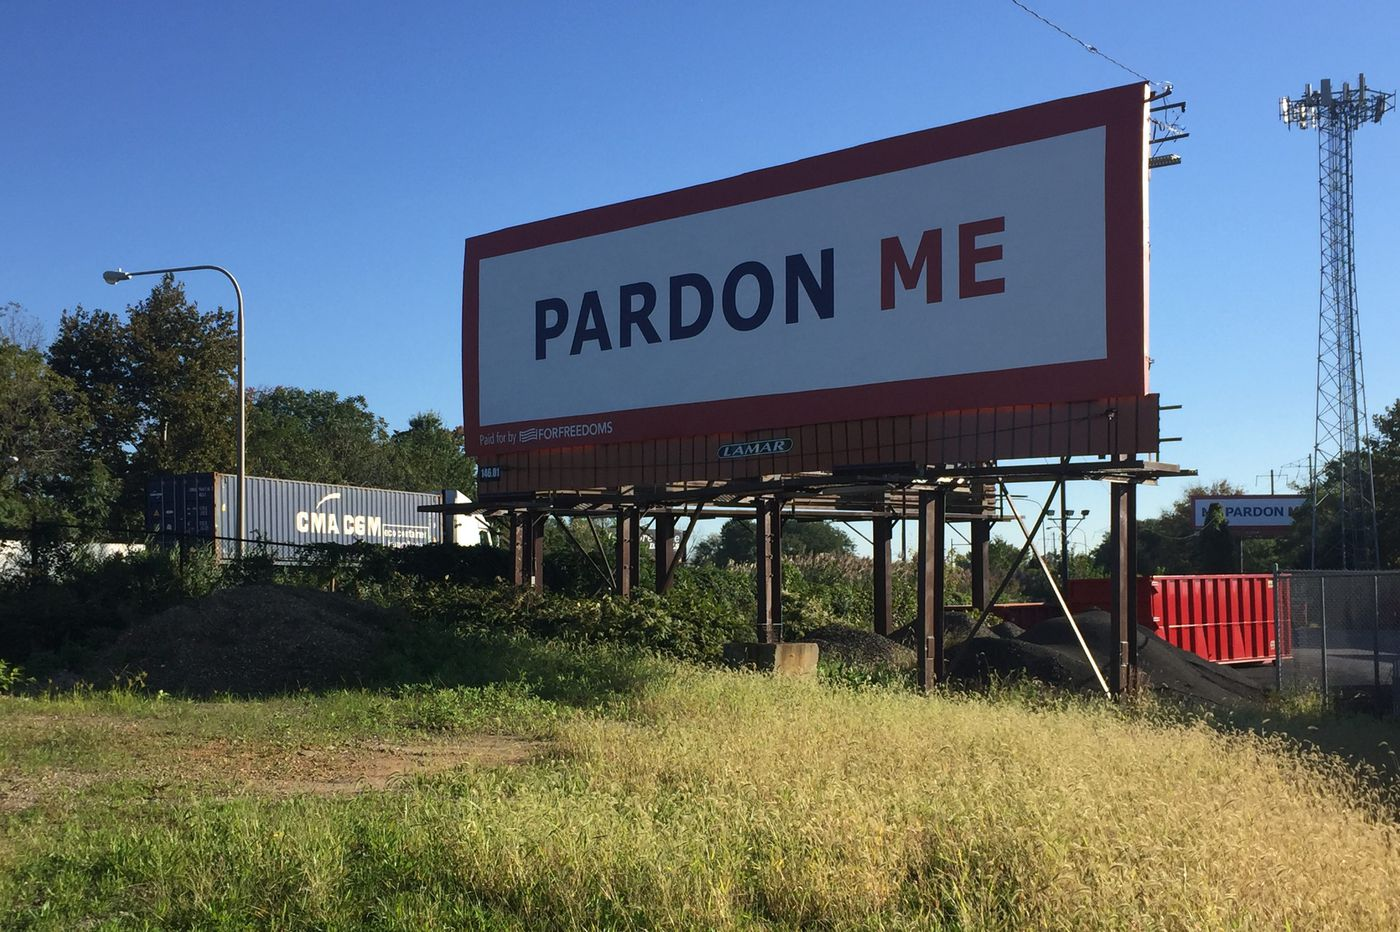 Those odd billboards on I-95 at Academy Road are part of a huge national art project